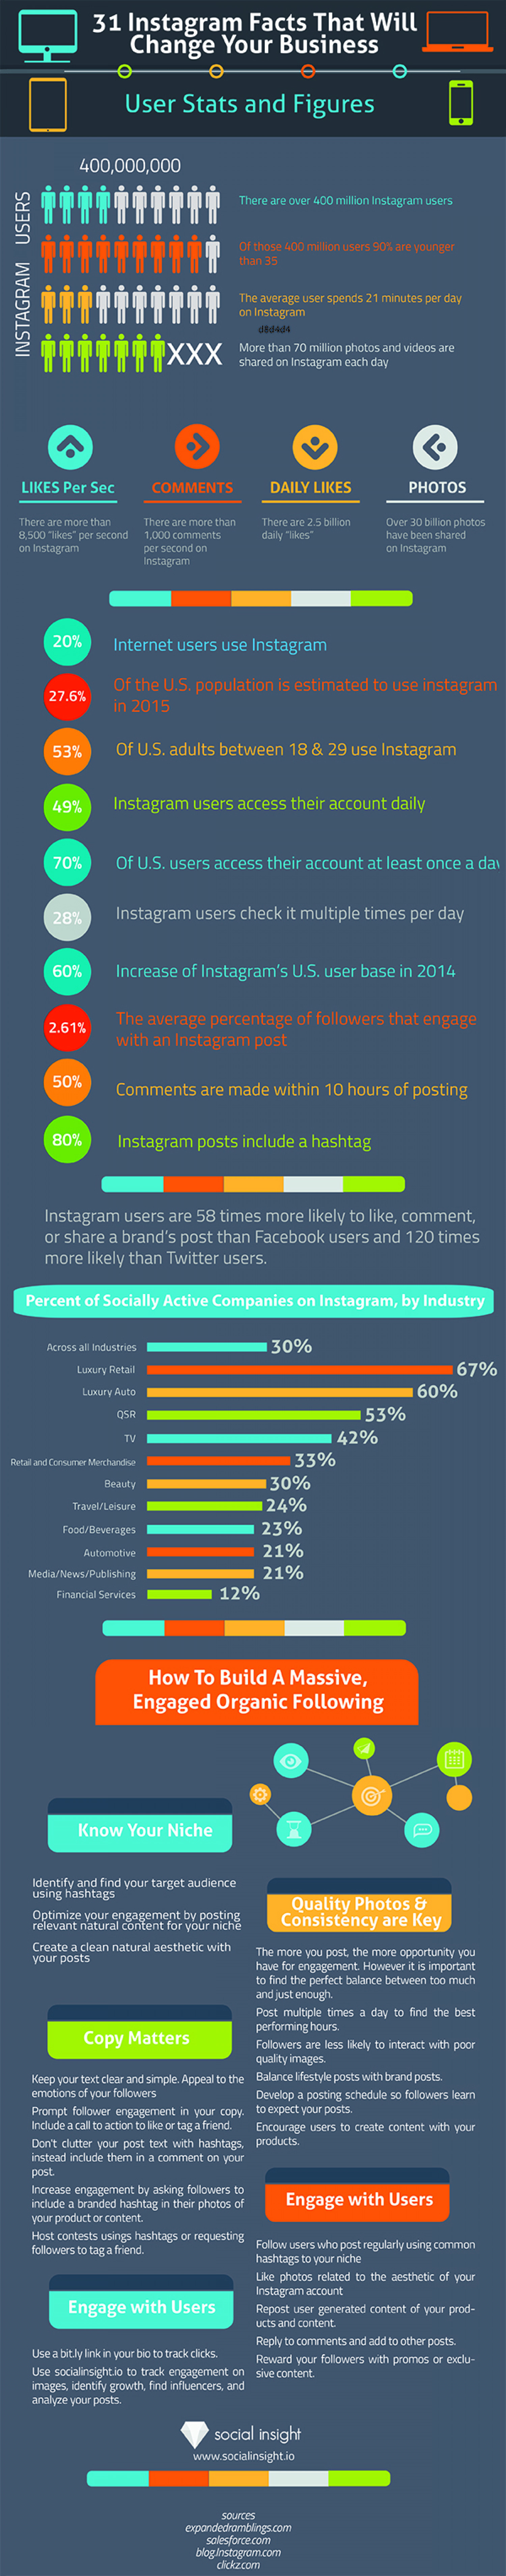 31 Instagram Facts That Will Change Your Business Infographic